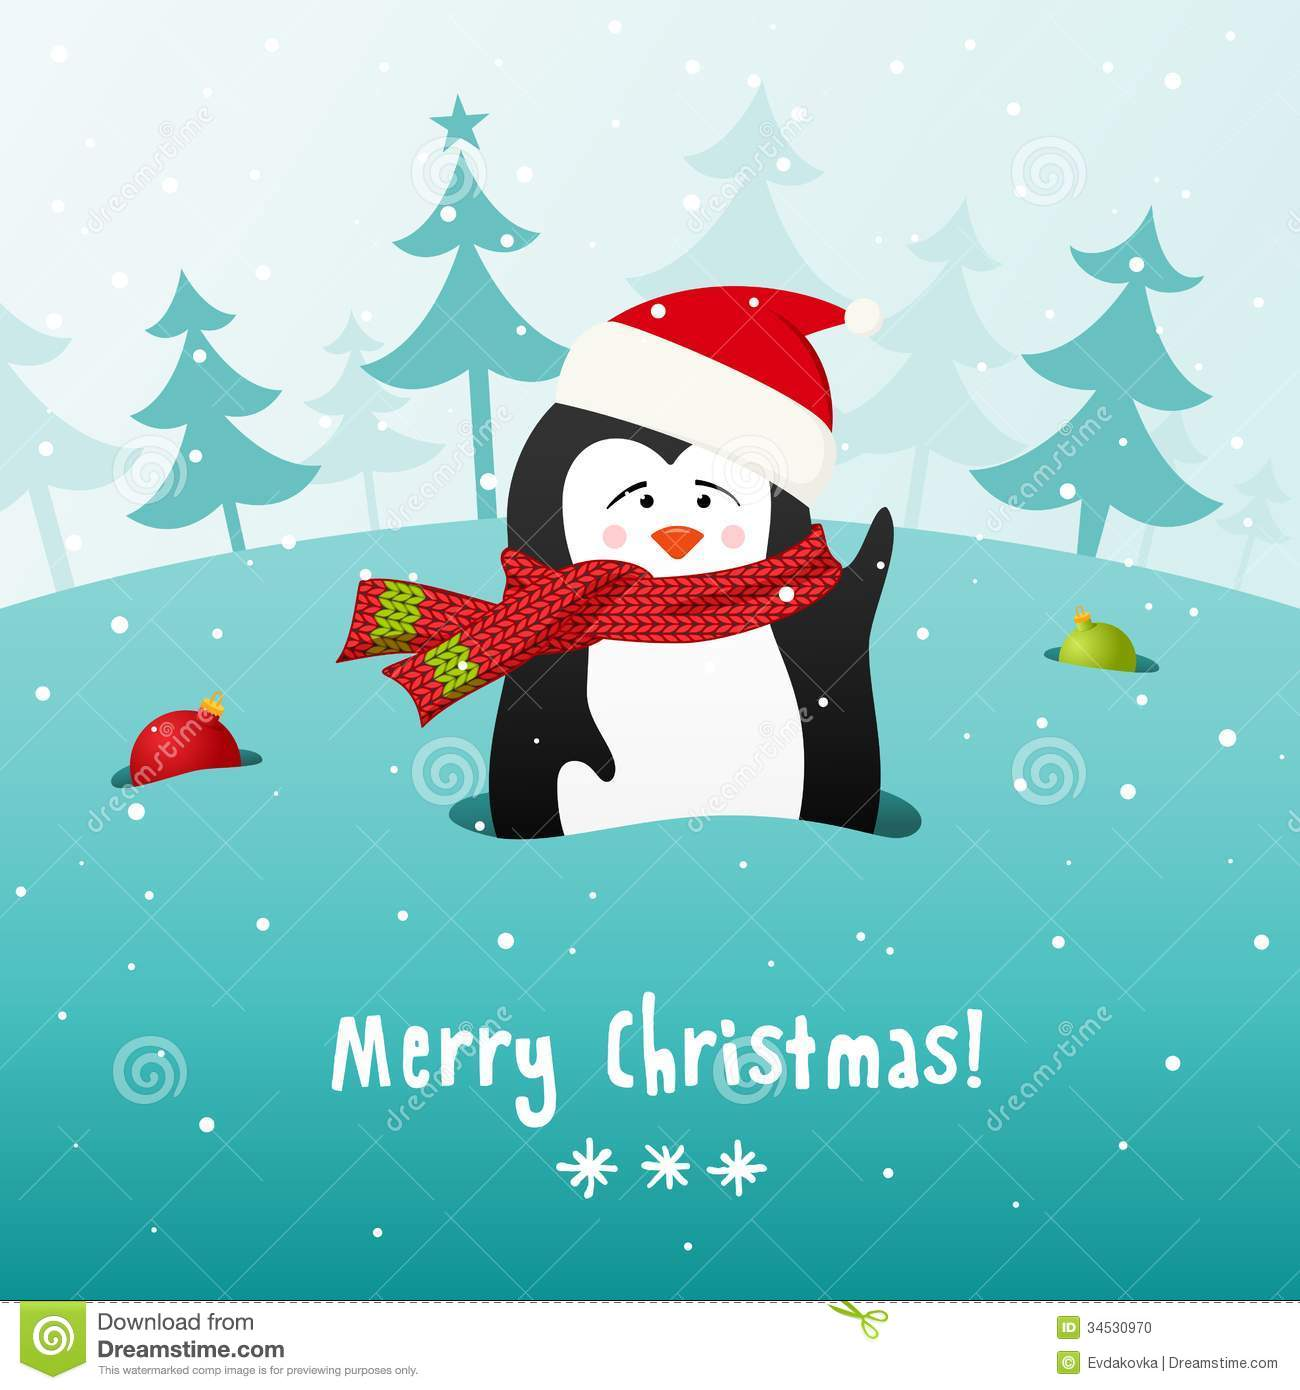 Penguin Background Vector Royalty Free Stock Photography Image Description Cute Christmas